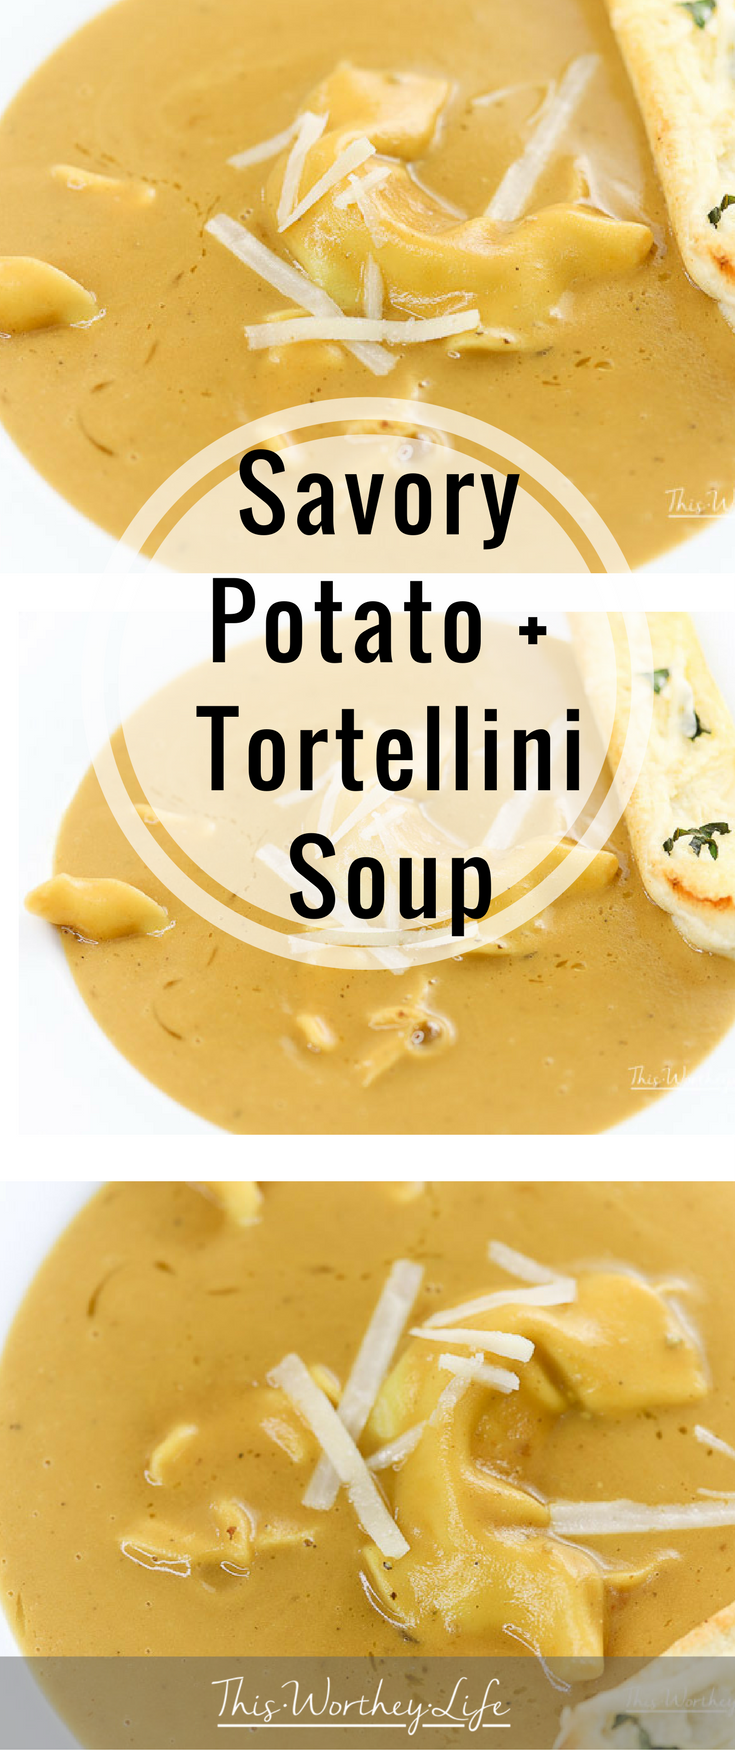 Stay warm with this hot bowl of savory potato + tortellini soup. With hearty vegetables, potatoes, tortellini, and a few other ingredients, I'm cooking this soup recipe in the Instant Pot! Get this soup recipe on the blog!